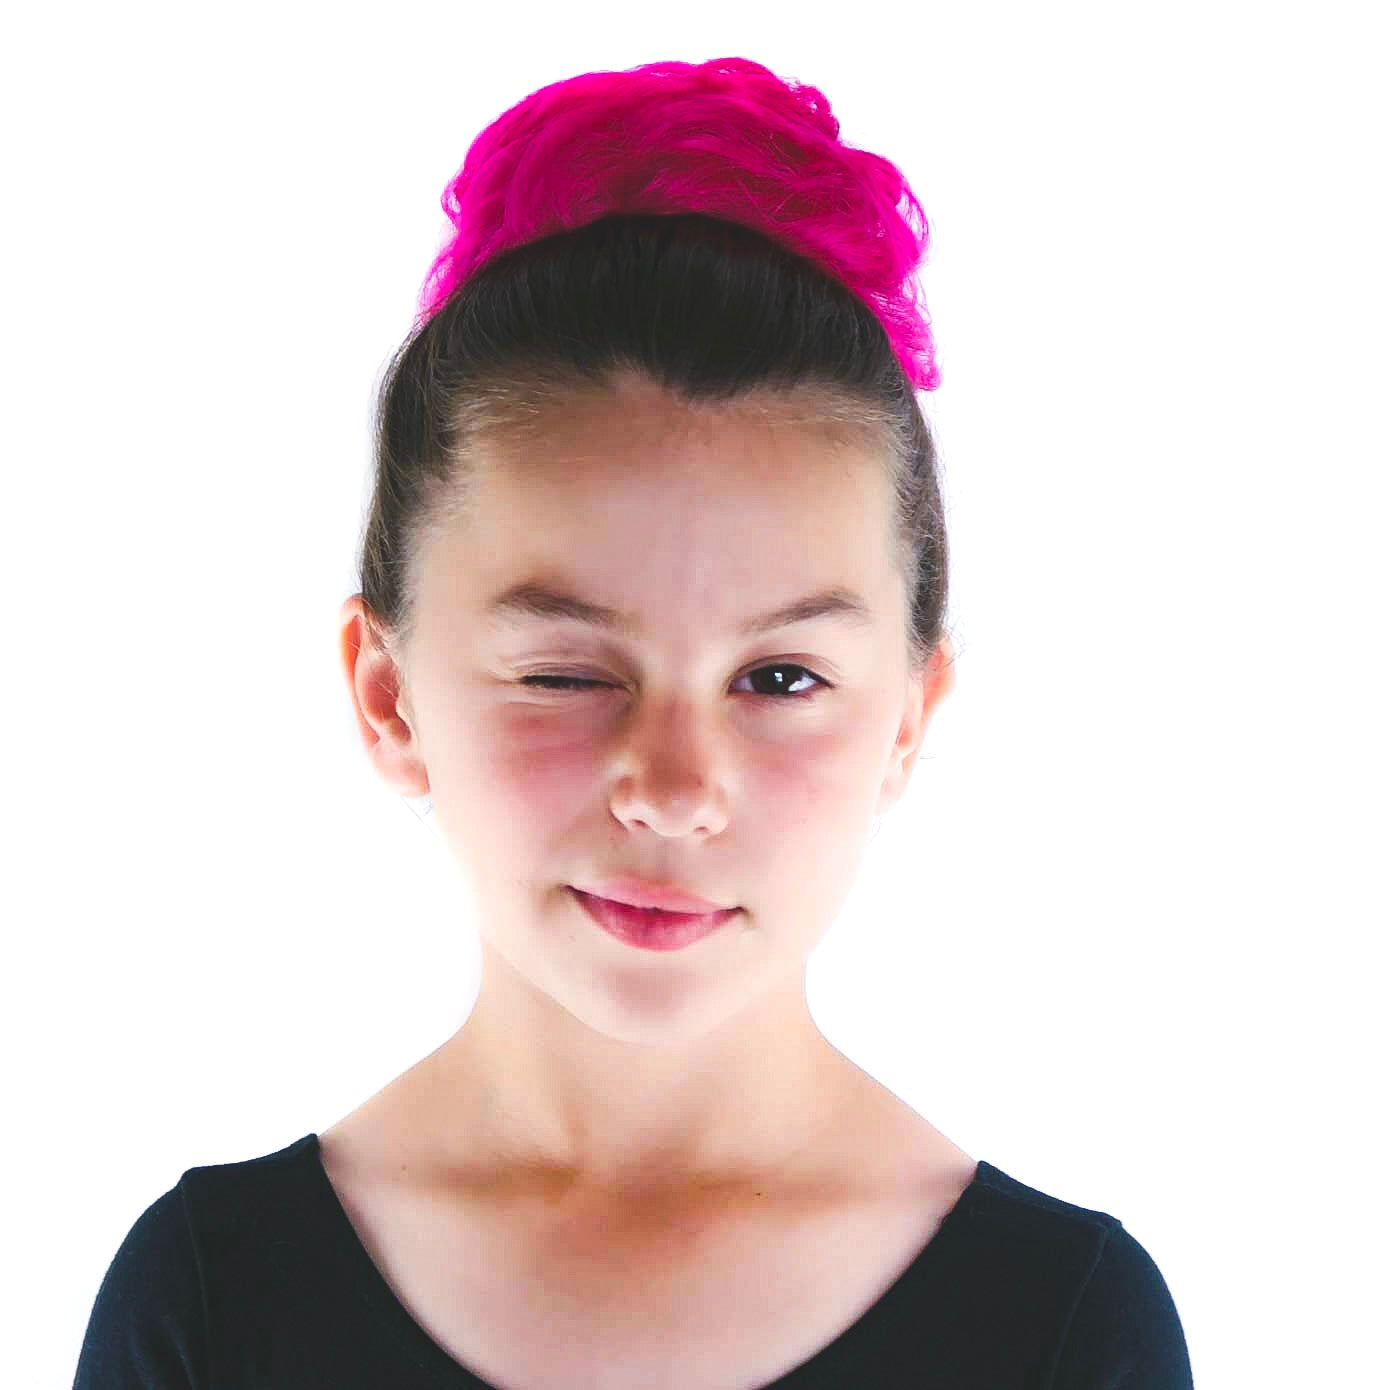 Ballerina hairstyle on a young girl with a hot pink curly ballet bun style